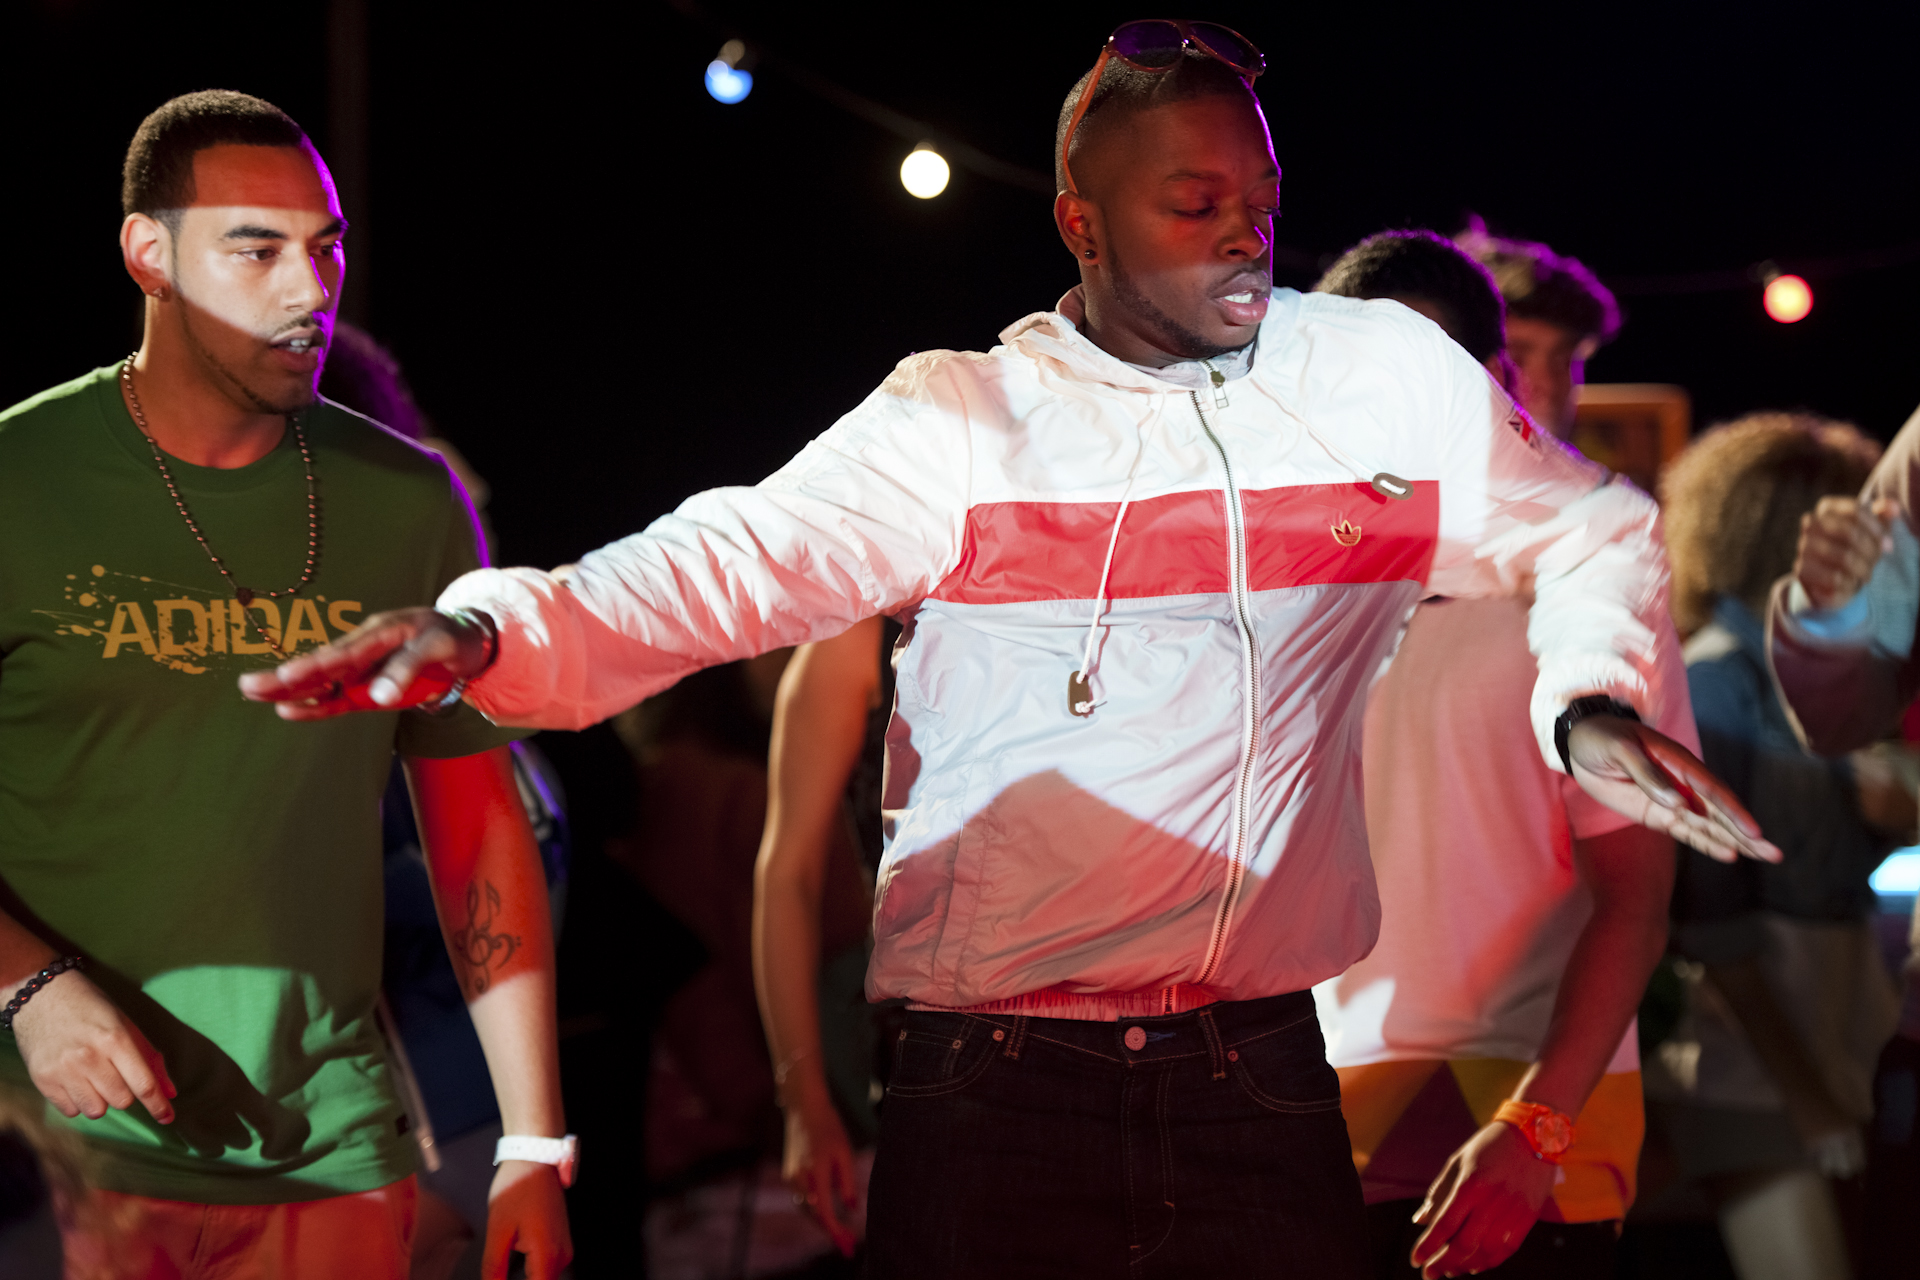 Adidas - Take The Stage 2012